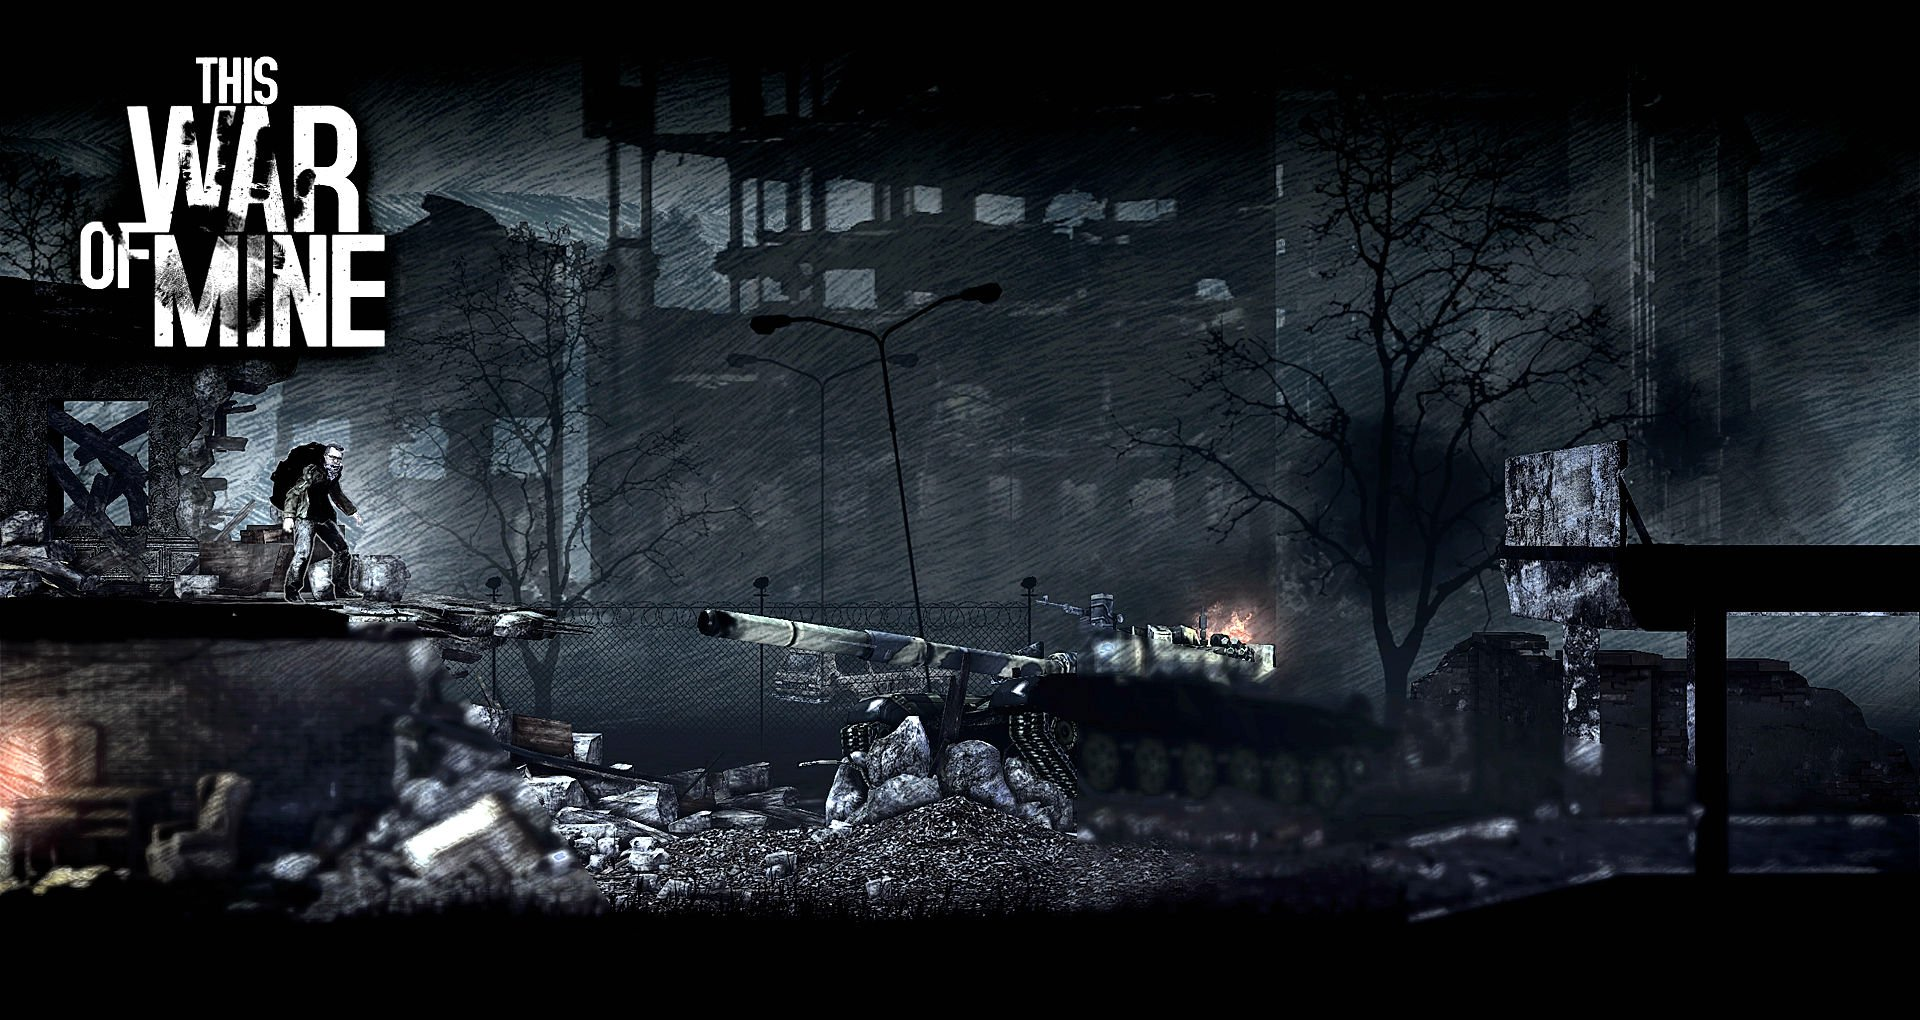 Sci Fi Wallpaper Of The Week 19: THIS WAR OF MINE Survival Horror Dark Apocalyptic Sci-fi